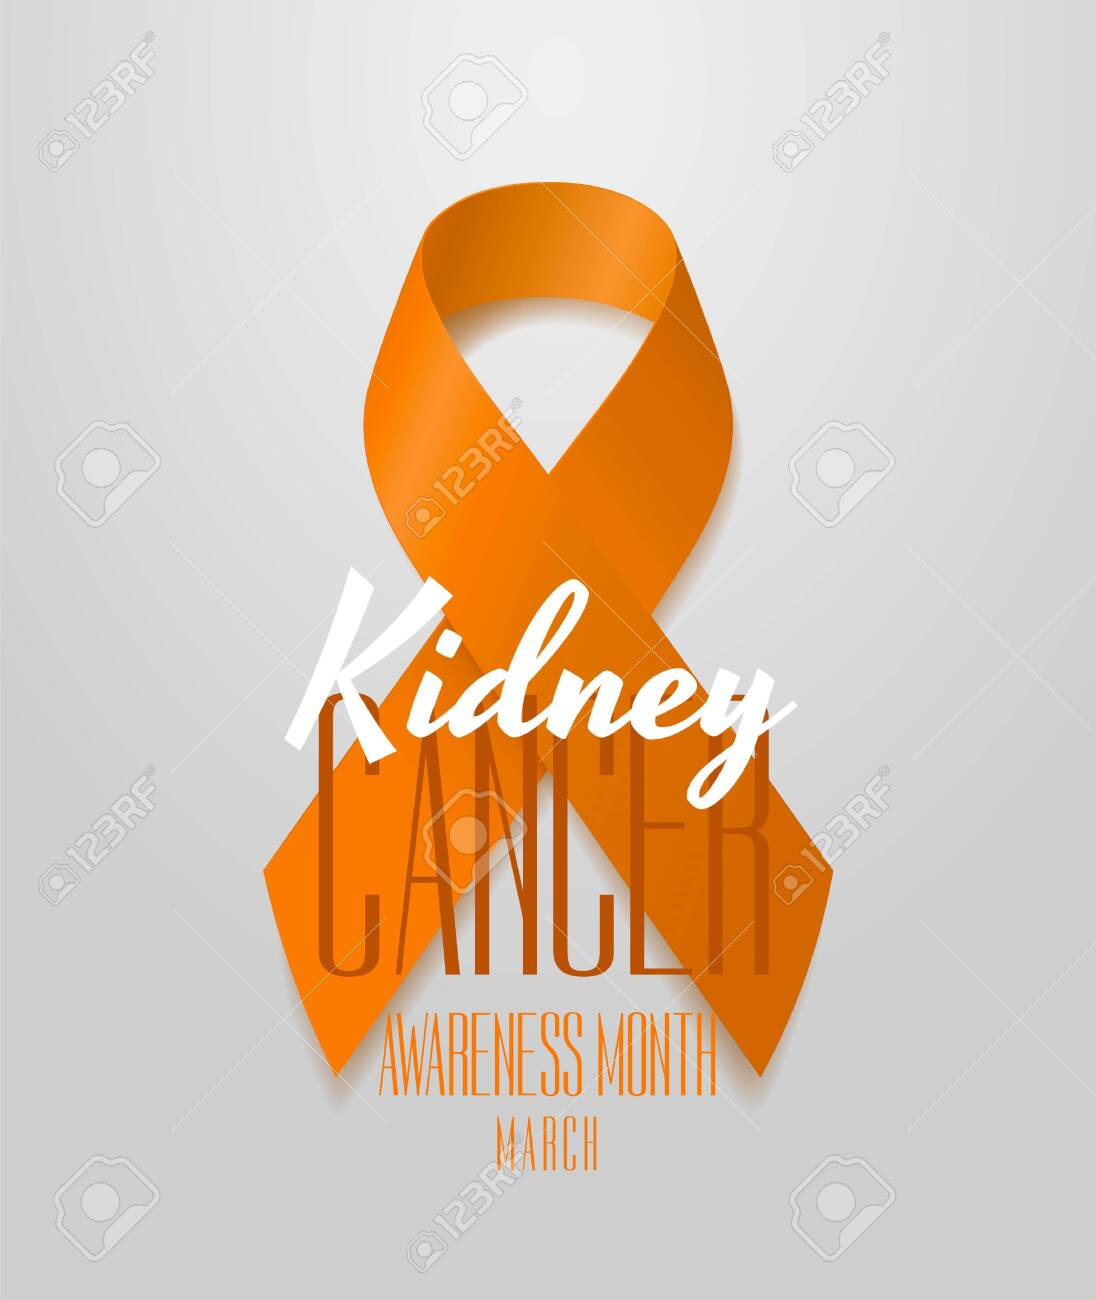 National Kidney Cancer Awareness Month Orange Color Ribbon Isolated Royalty Free Cliparts Vectors And Stock Illustration Image 120093368